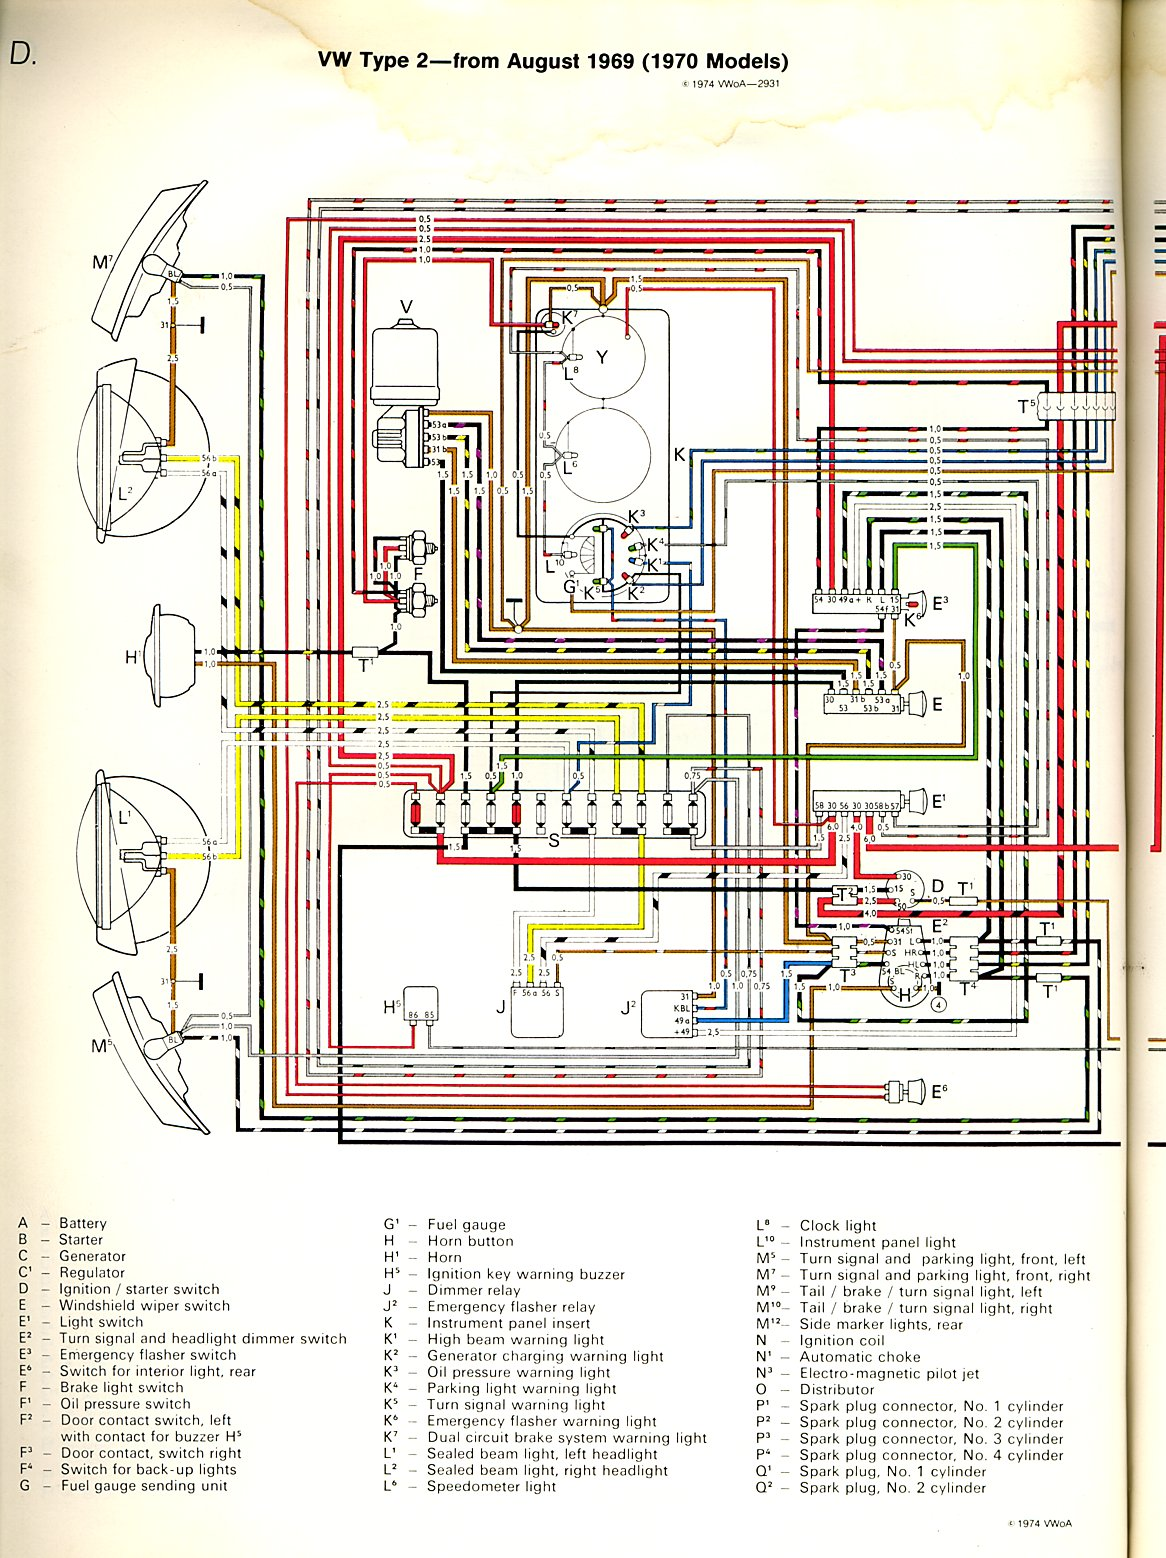 1968 vw bug wiring 1970 vw bug wiring diagram